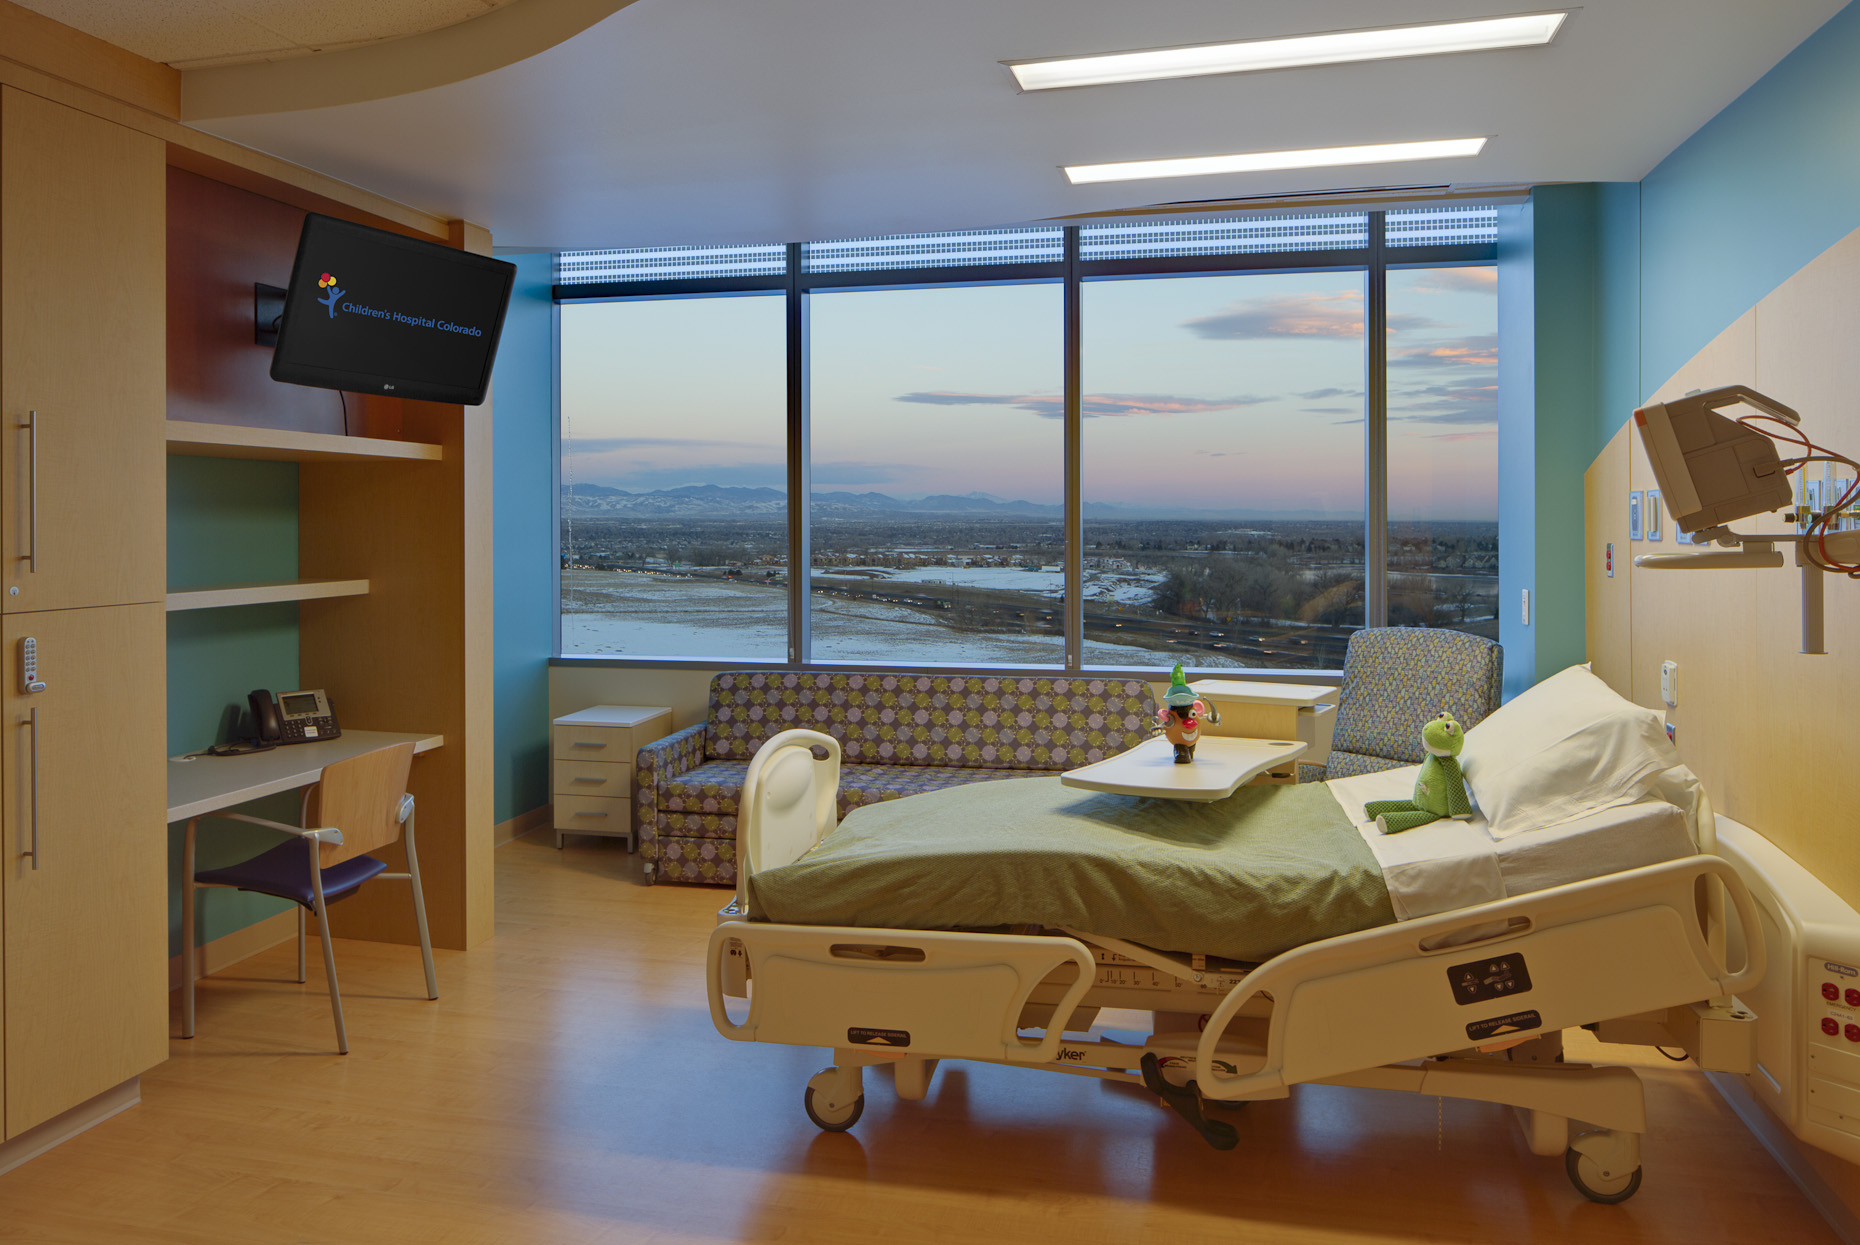 Children's Hospital Colorado South Campus by FKP Architects